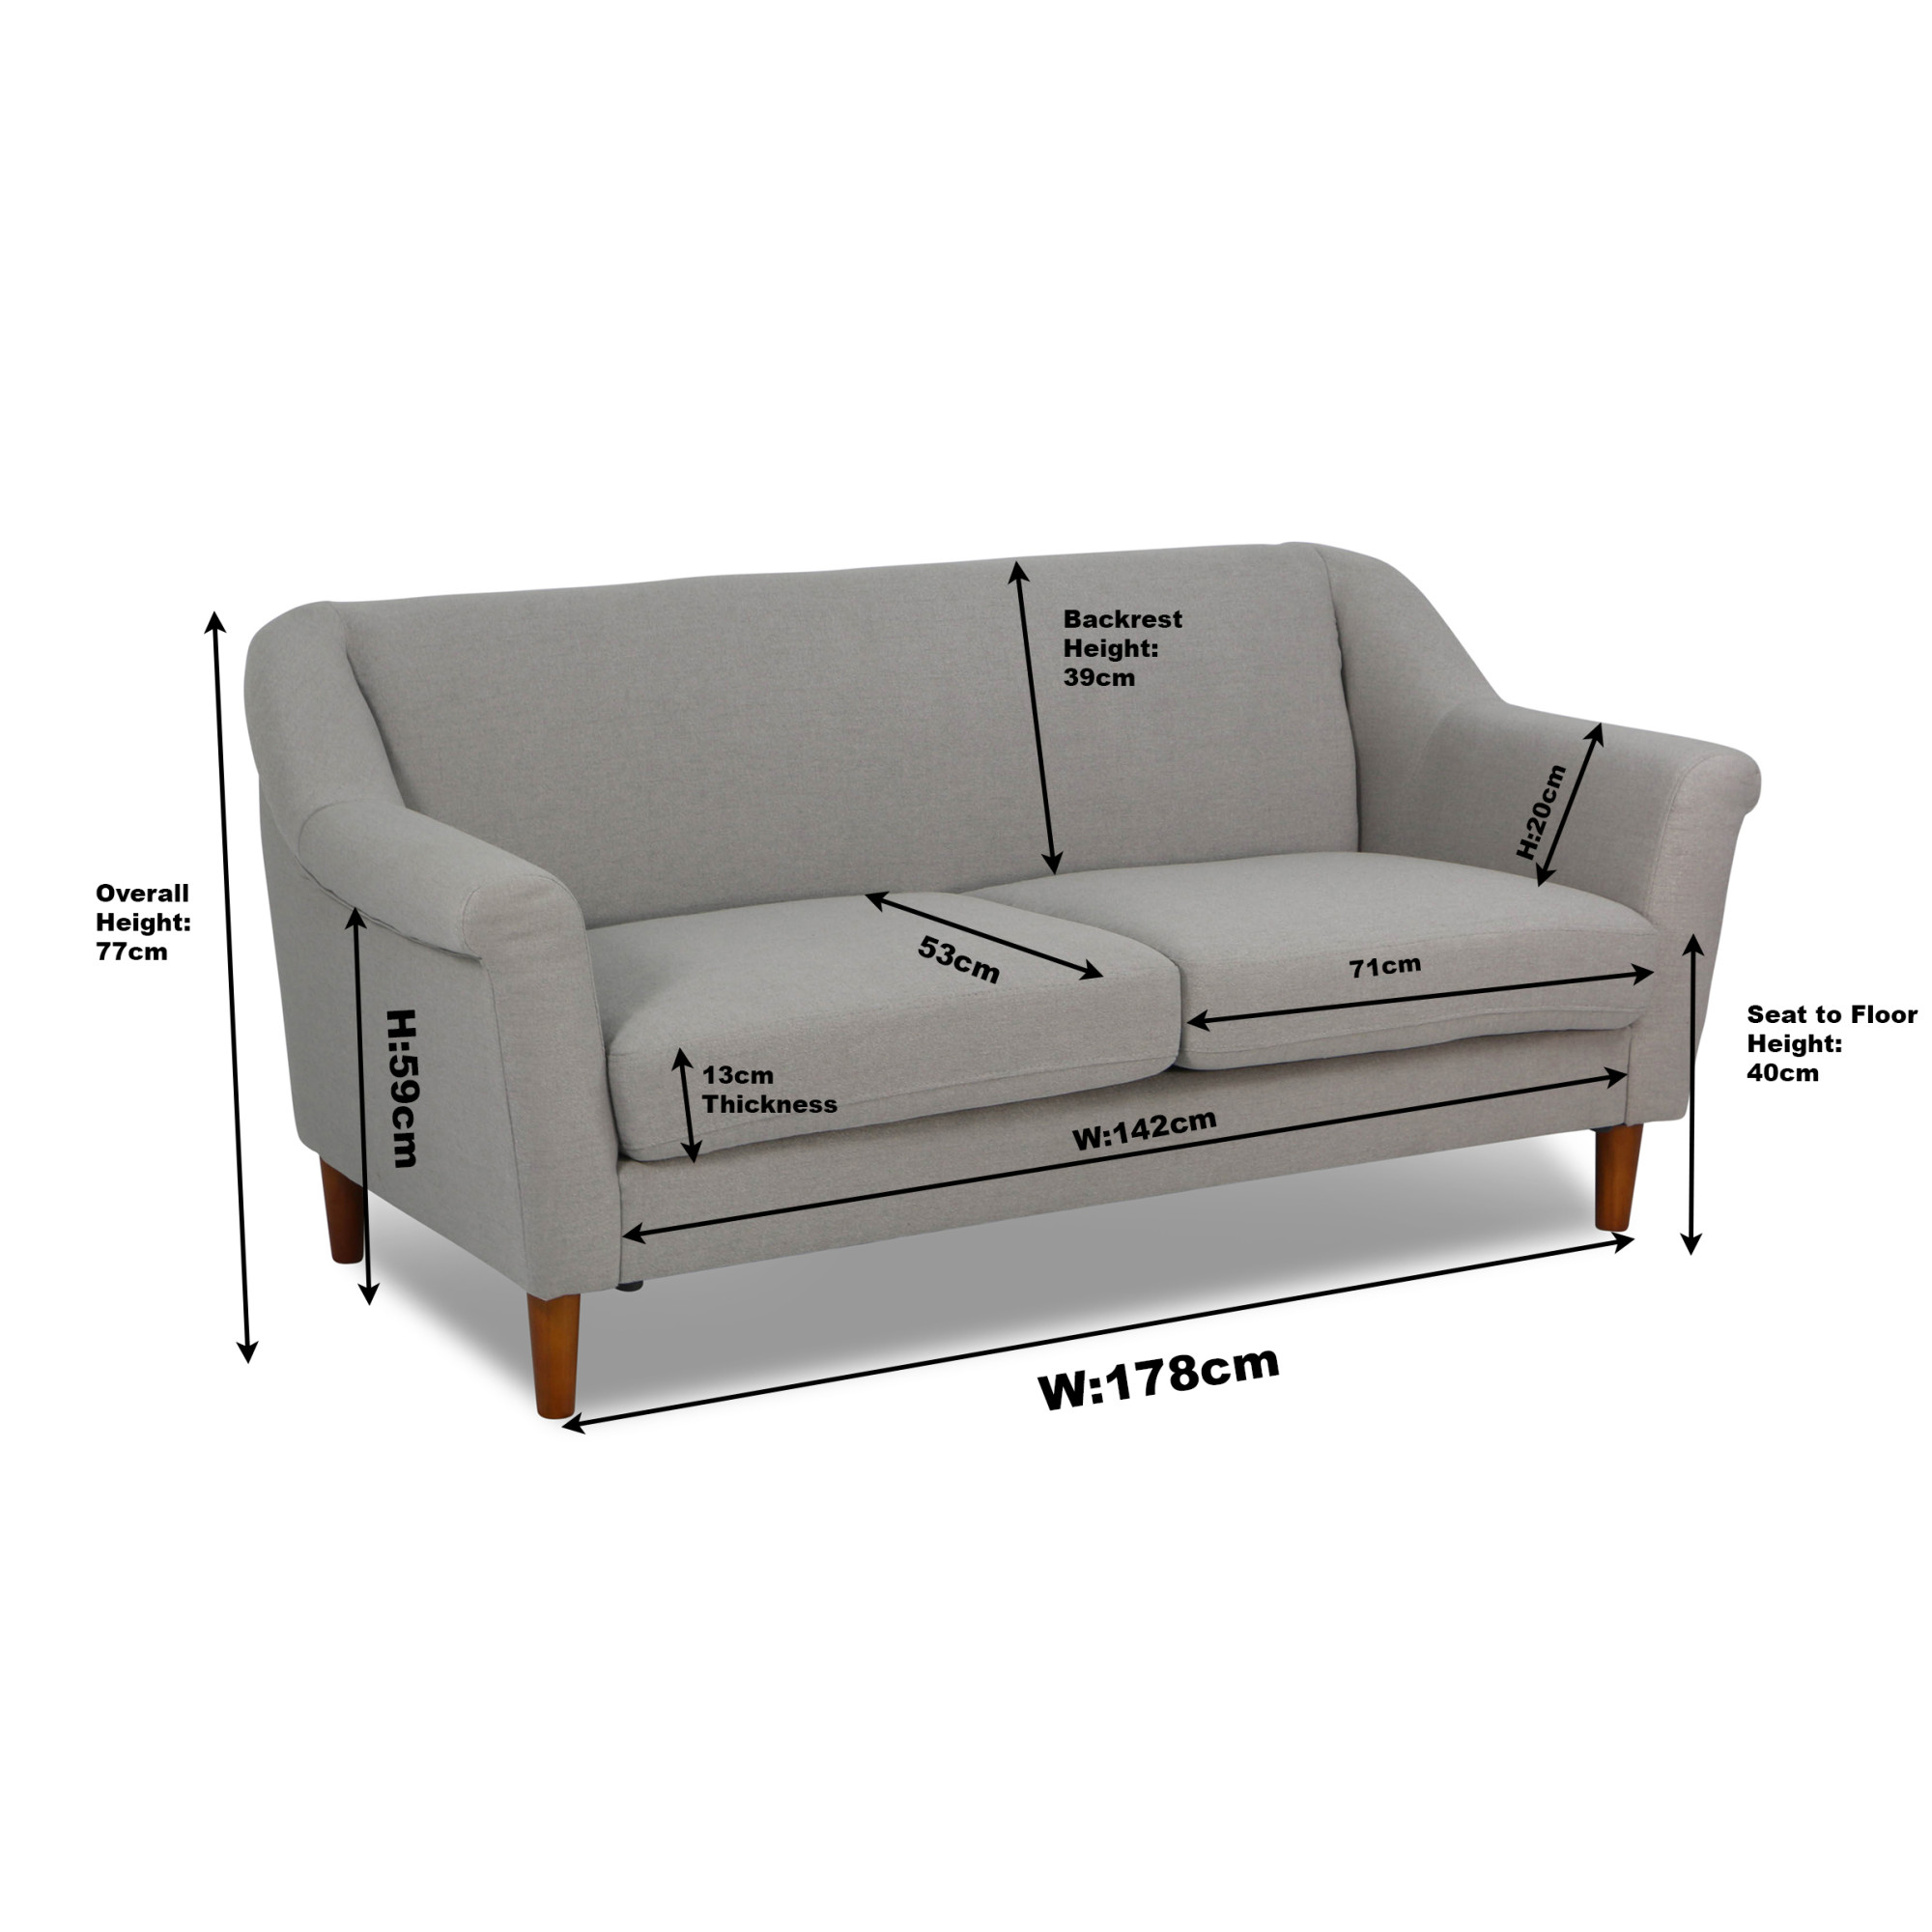 Ln Fabric 3 Seater Sofa Regular Price S 546 90